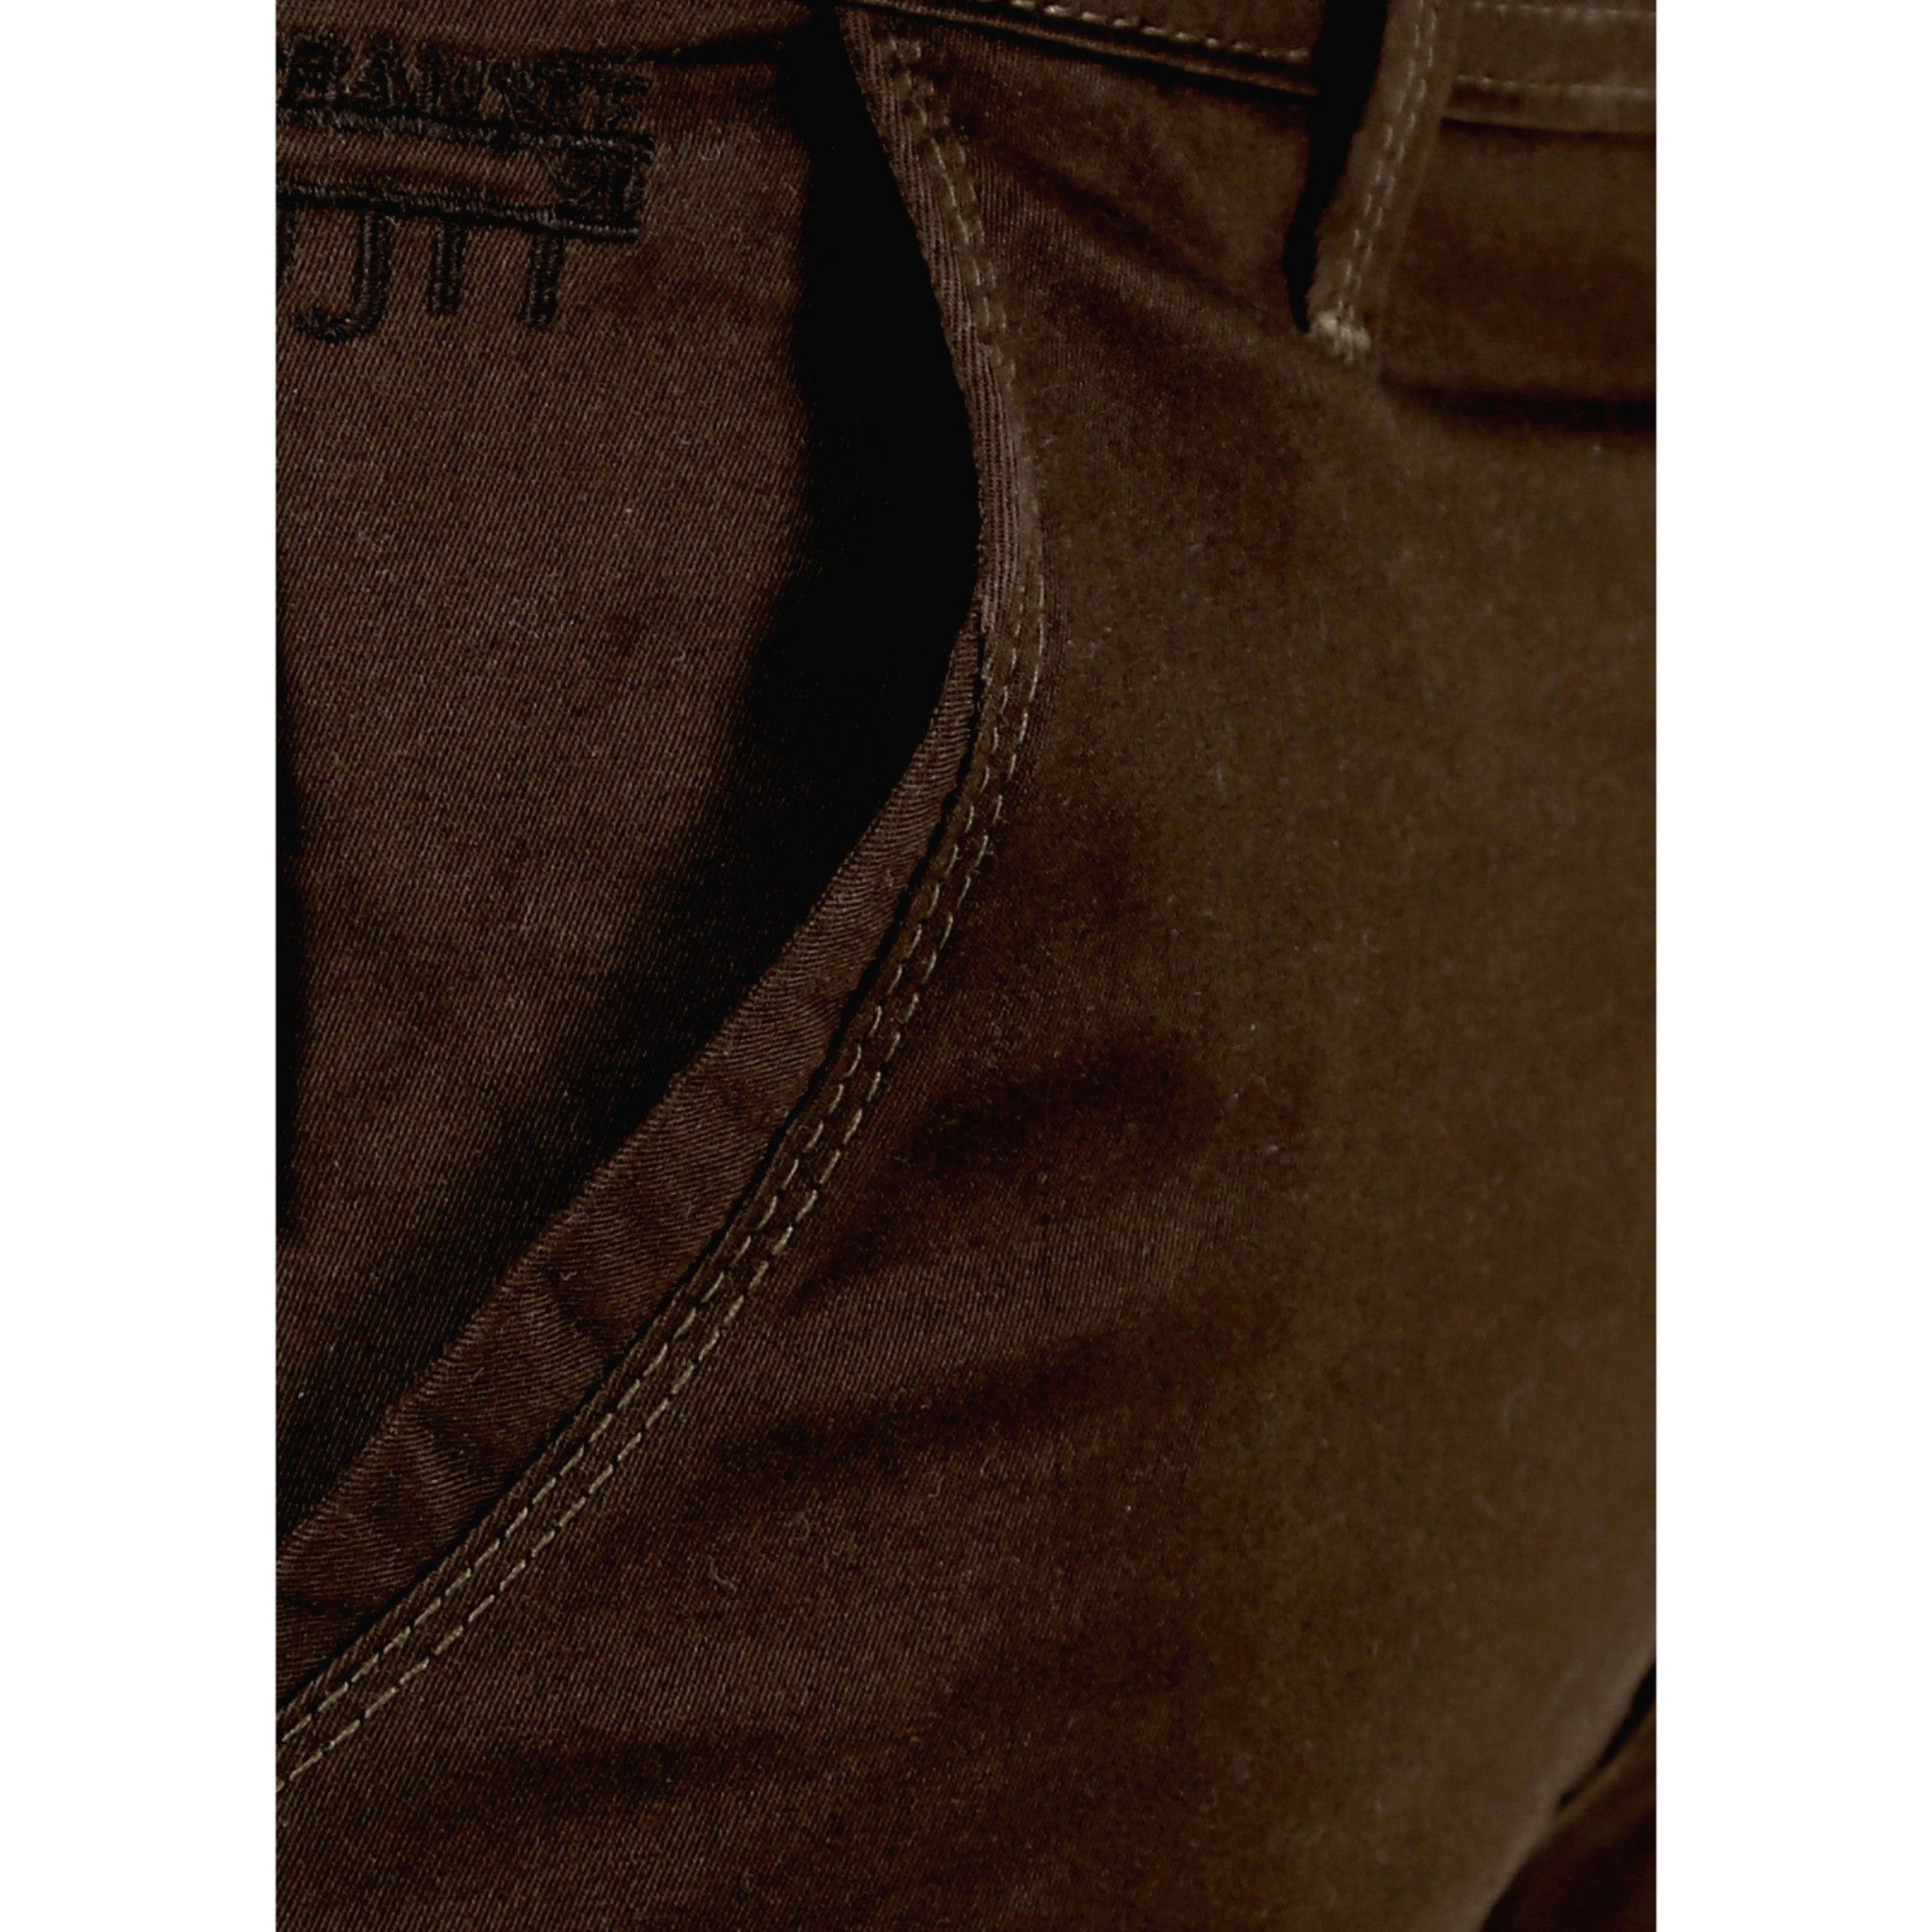 Uber Coffee Brown Cotton Twill Elastene Trouser close up view